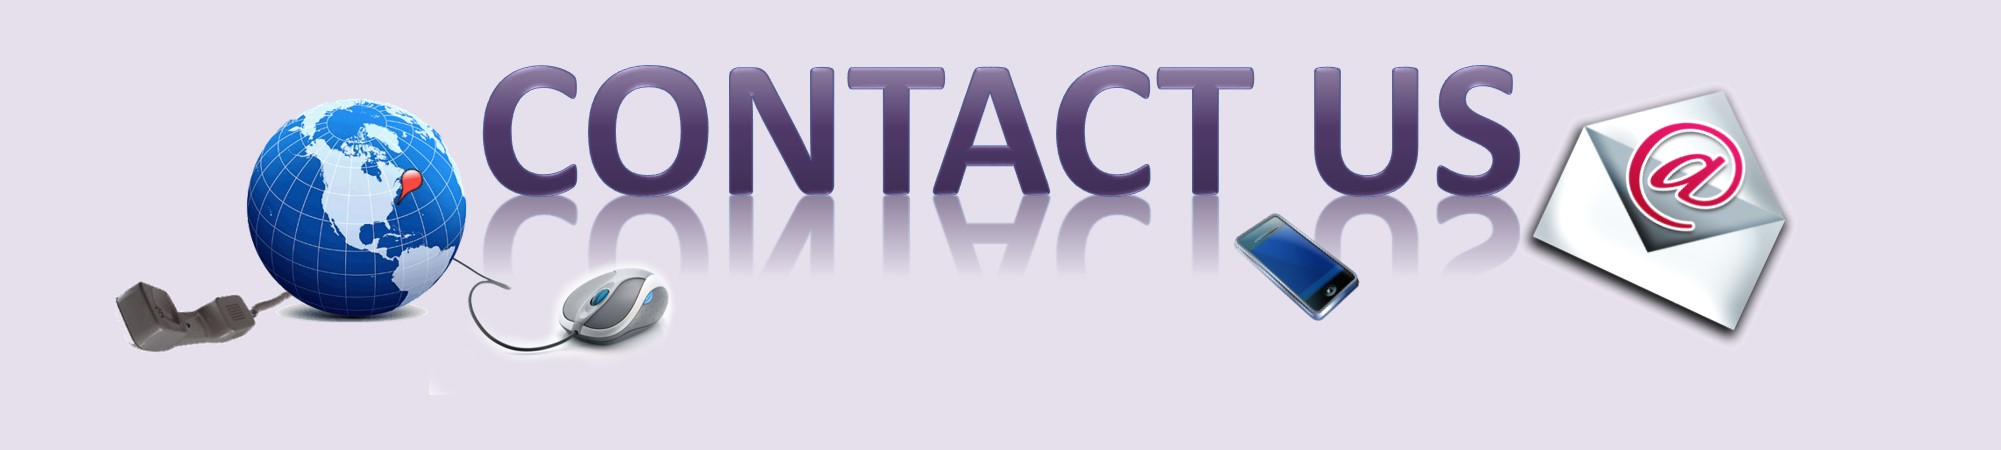 Contact/